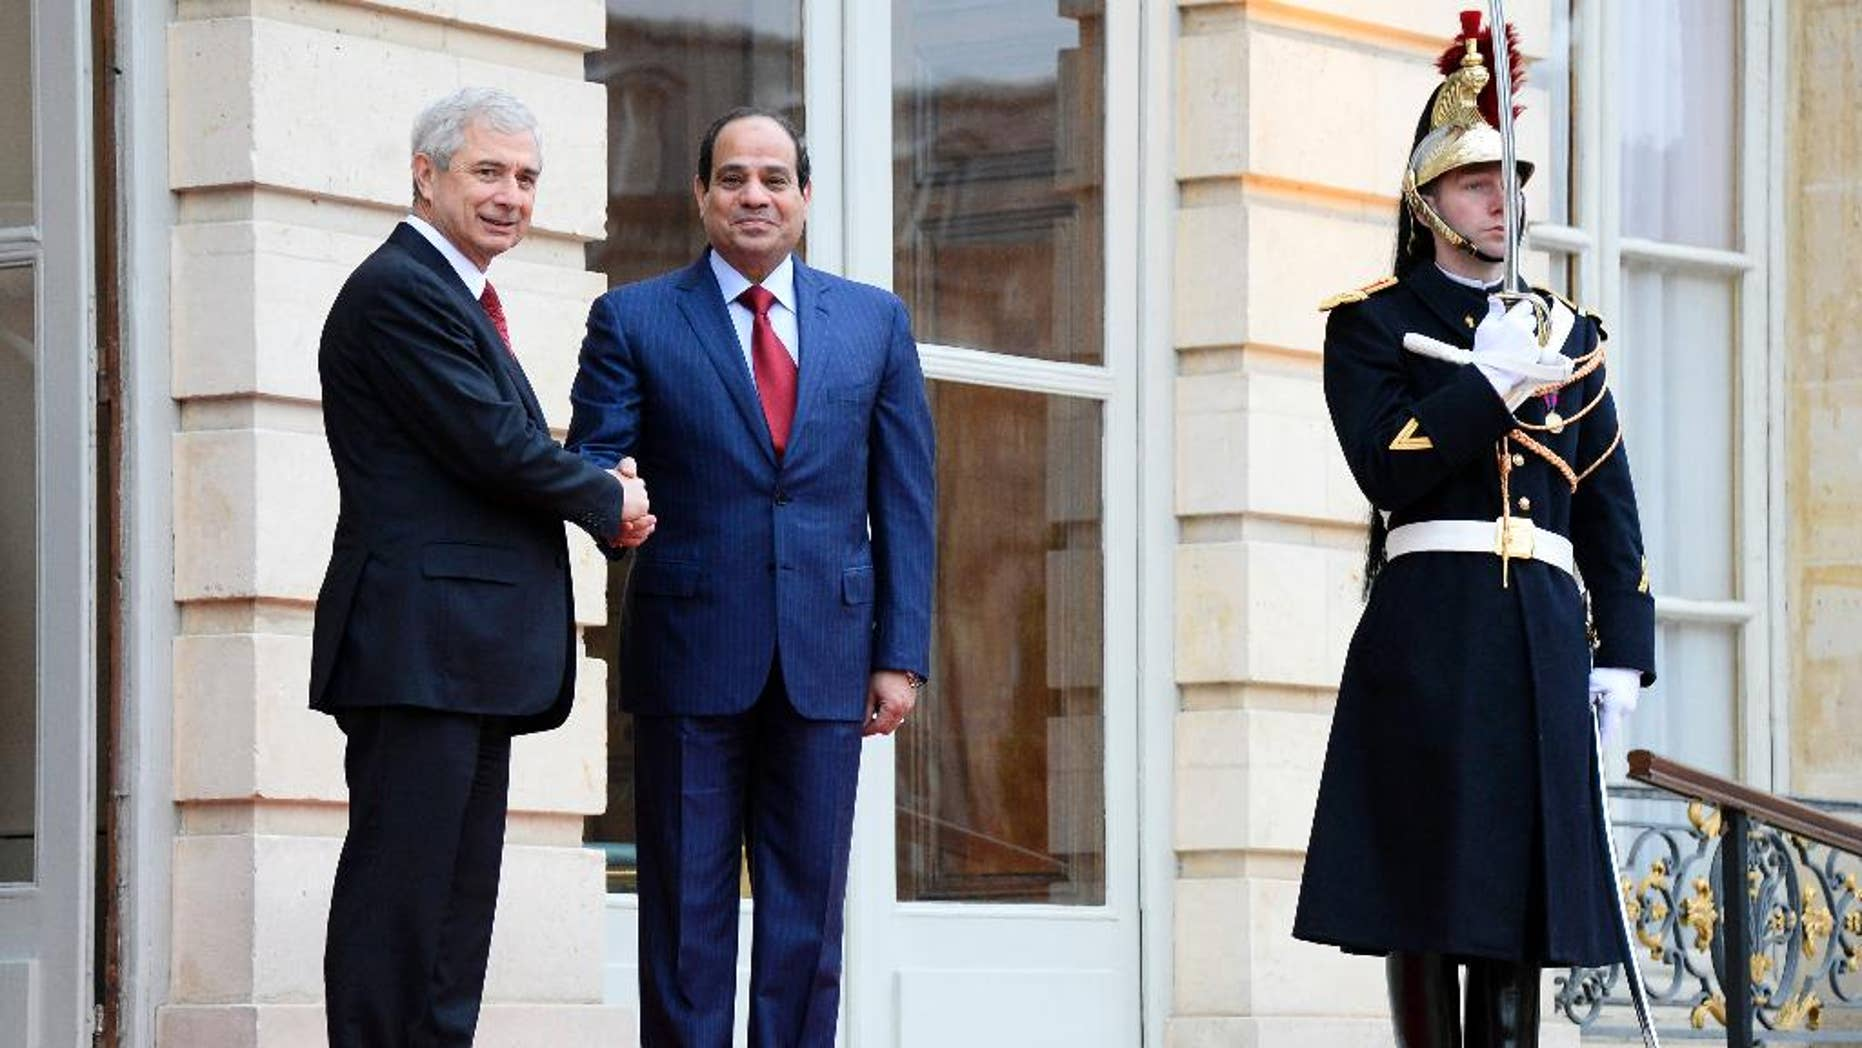 French National Assembly President Claude Bartolone, left, welcomes Egyptian President Abdel-Fattah el-Sissi  before their talks in Paris, France, Thursday Nov. 27 Nov. 2014. Sissi ends his two-day visit to France. (AP Photo/Bertrand Guay, Pool)